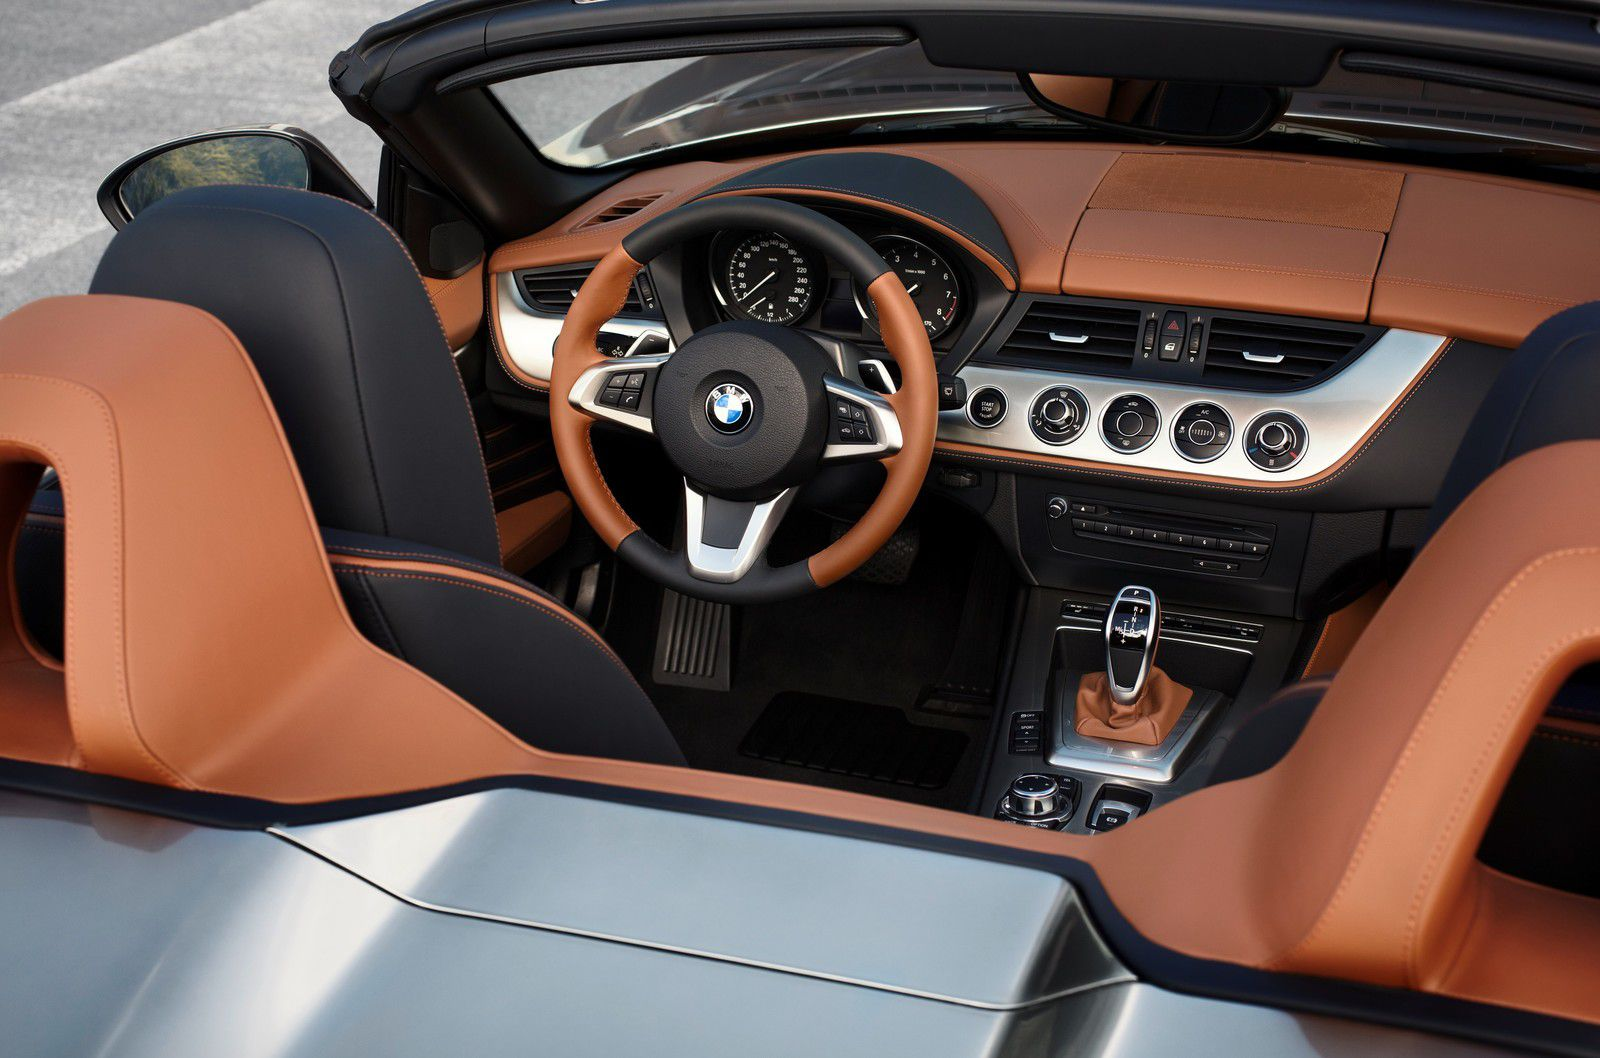 VOITURES DE LEGENDE (1119) : BMW  ZAGATO ROADSTER - 2012